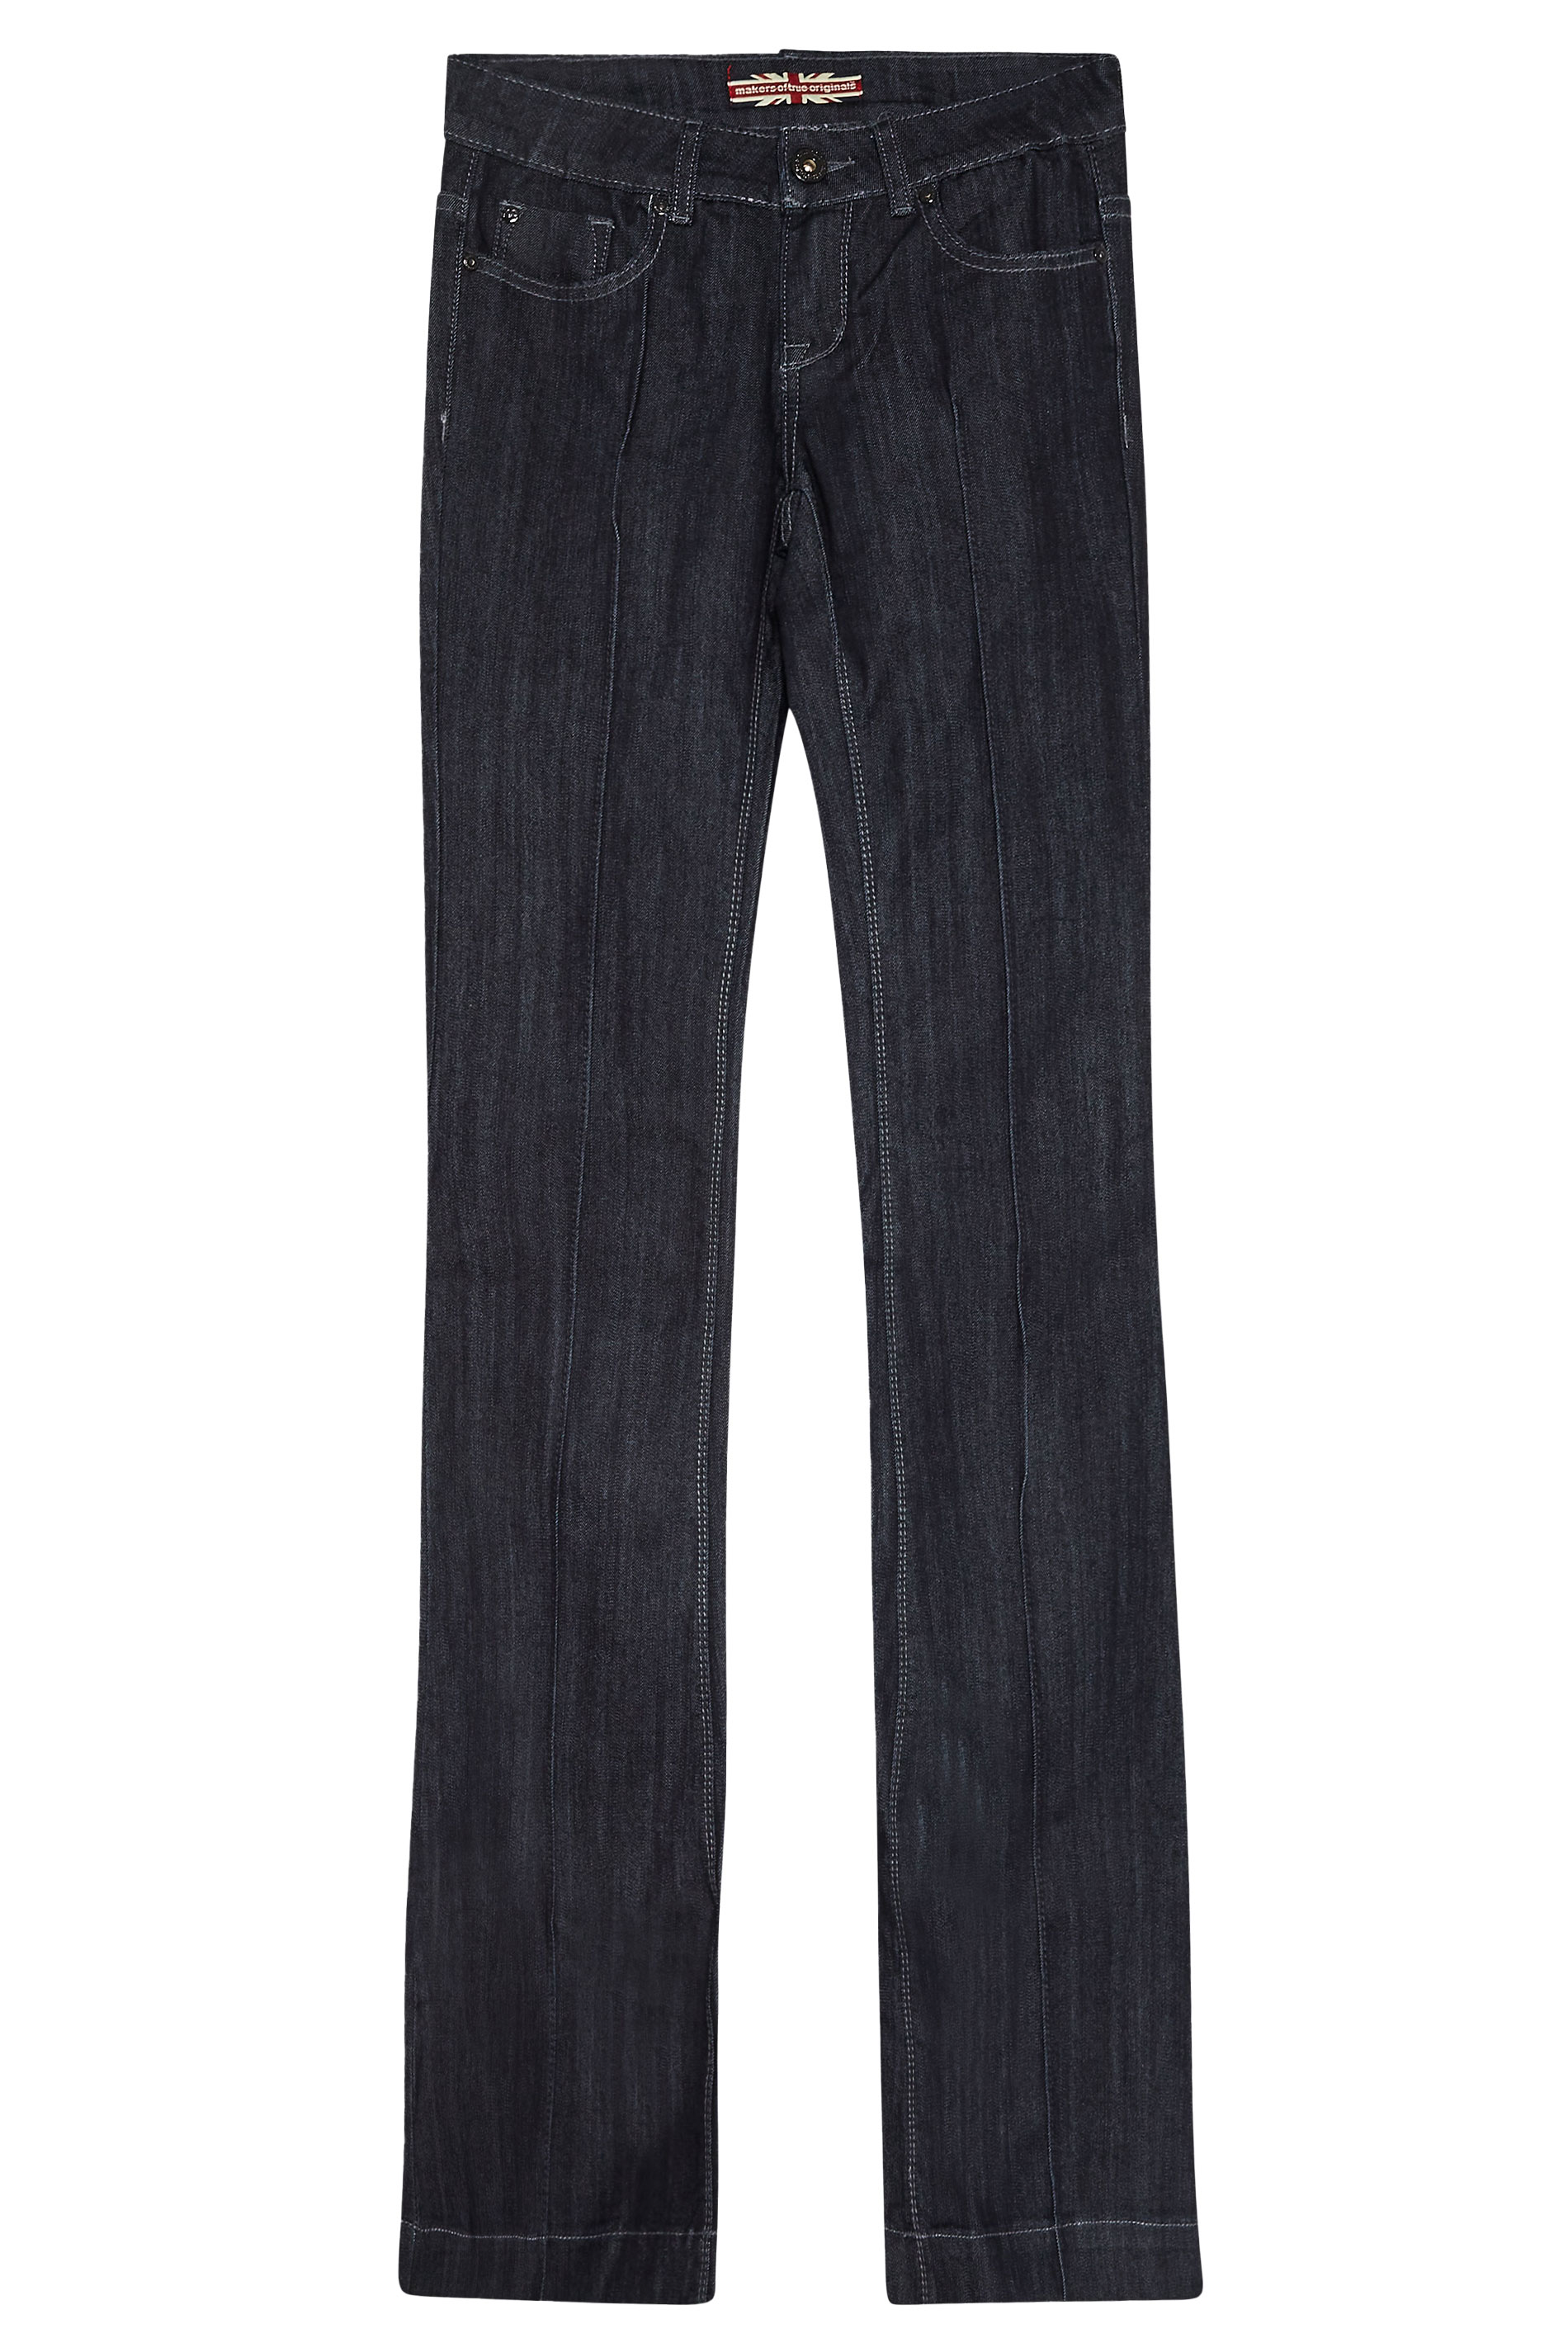 Dark Denim Ginger Jean